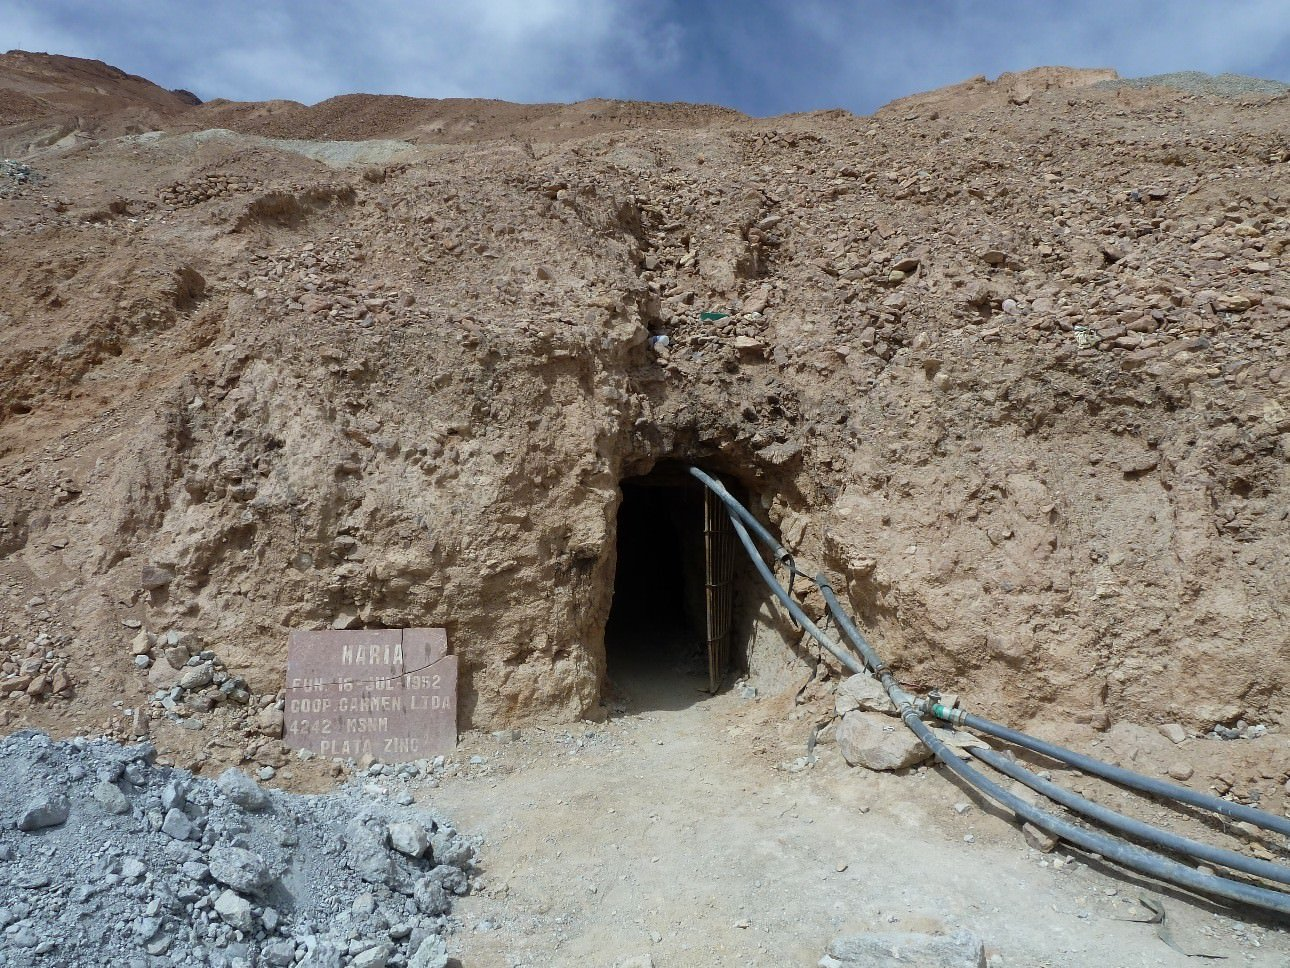 One of many entrances to the Cerro Rico Mines